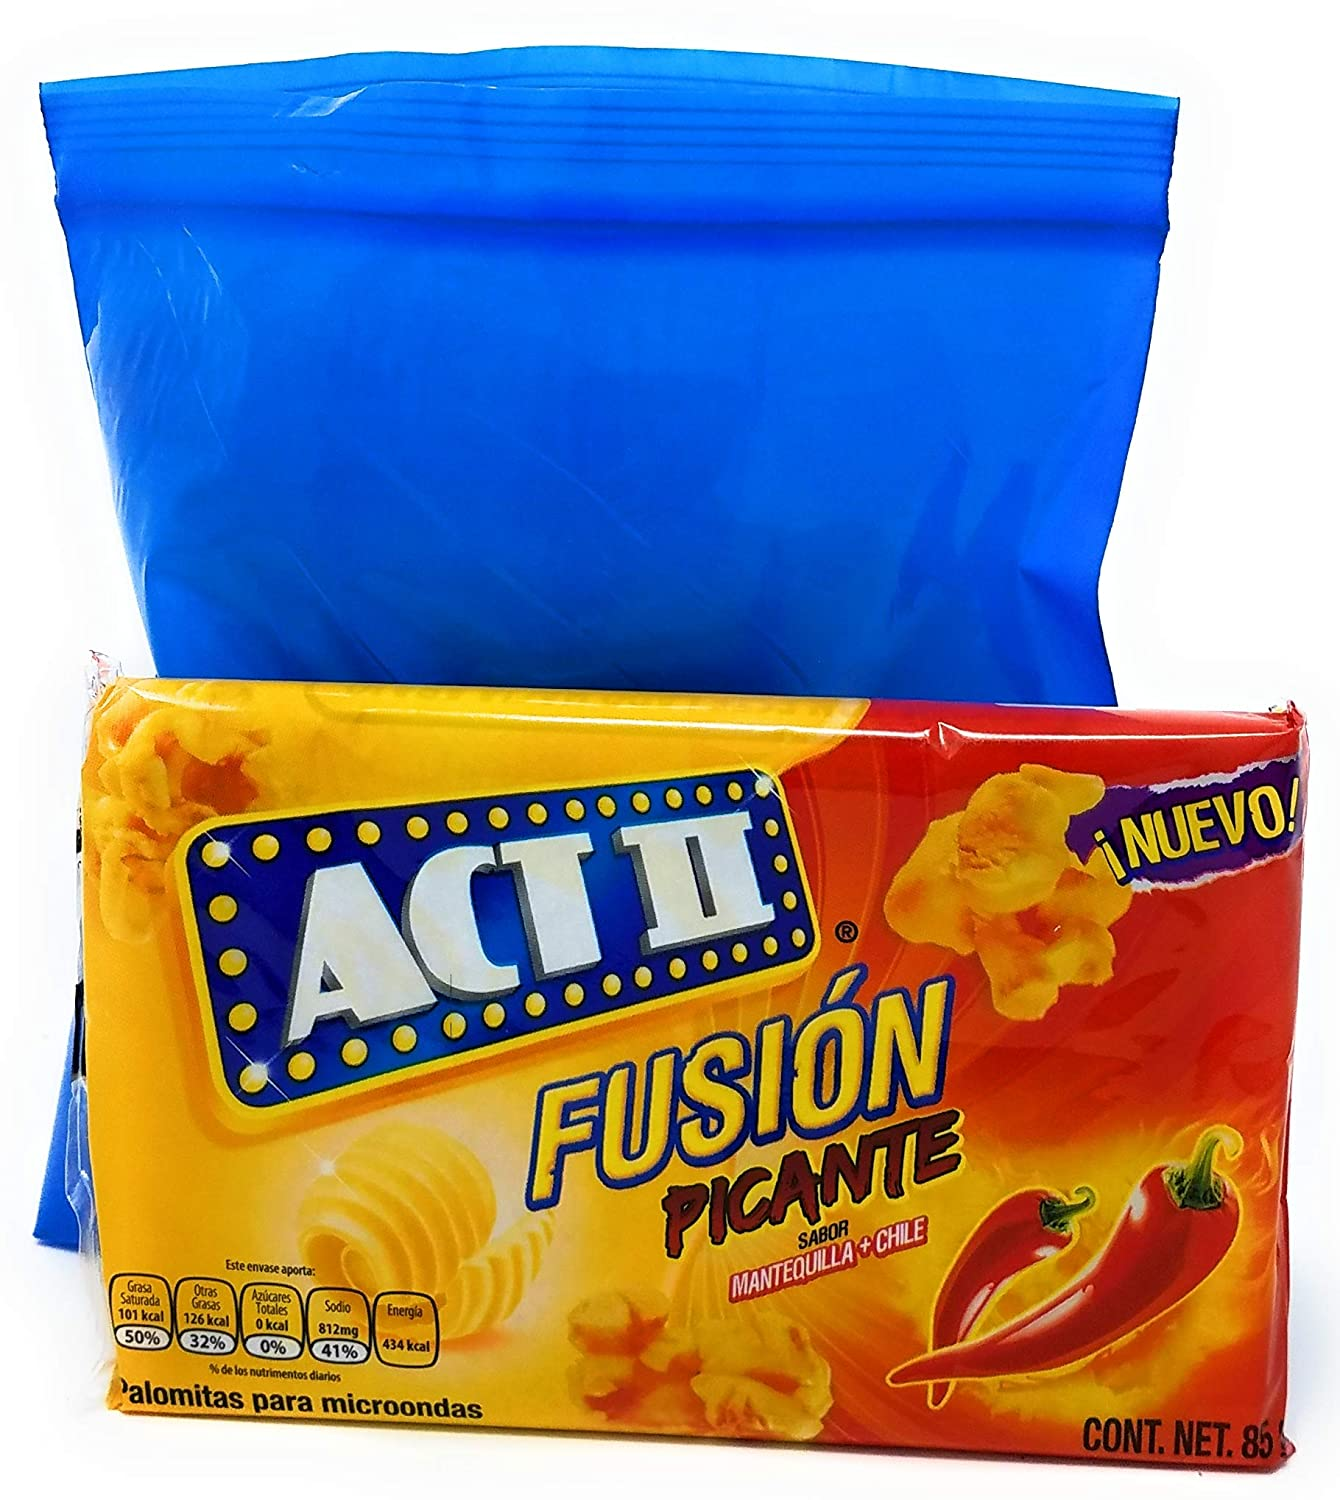 Amazon.com: Act II Fusion Picante (Butter & Chile) Microwave ...